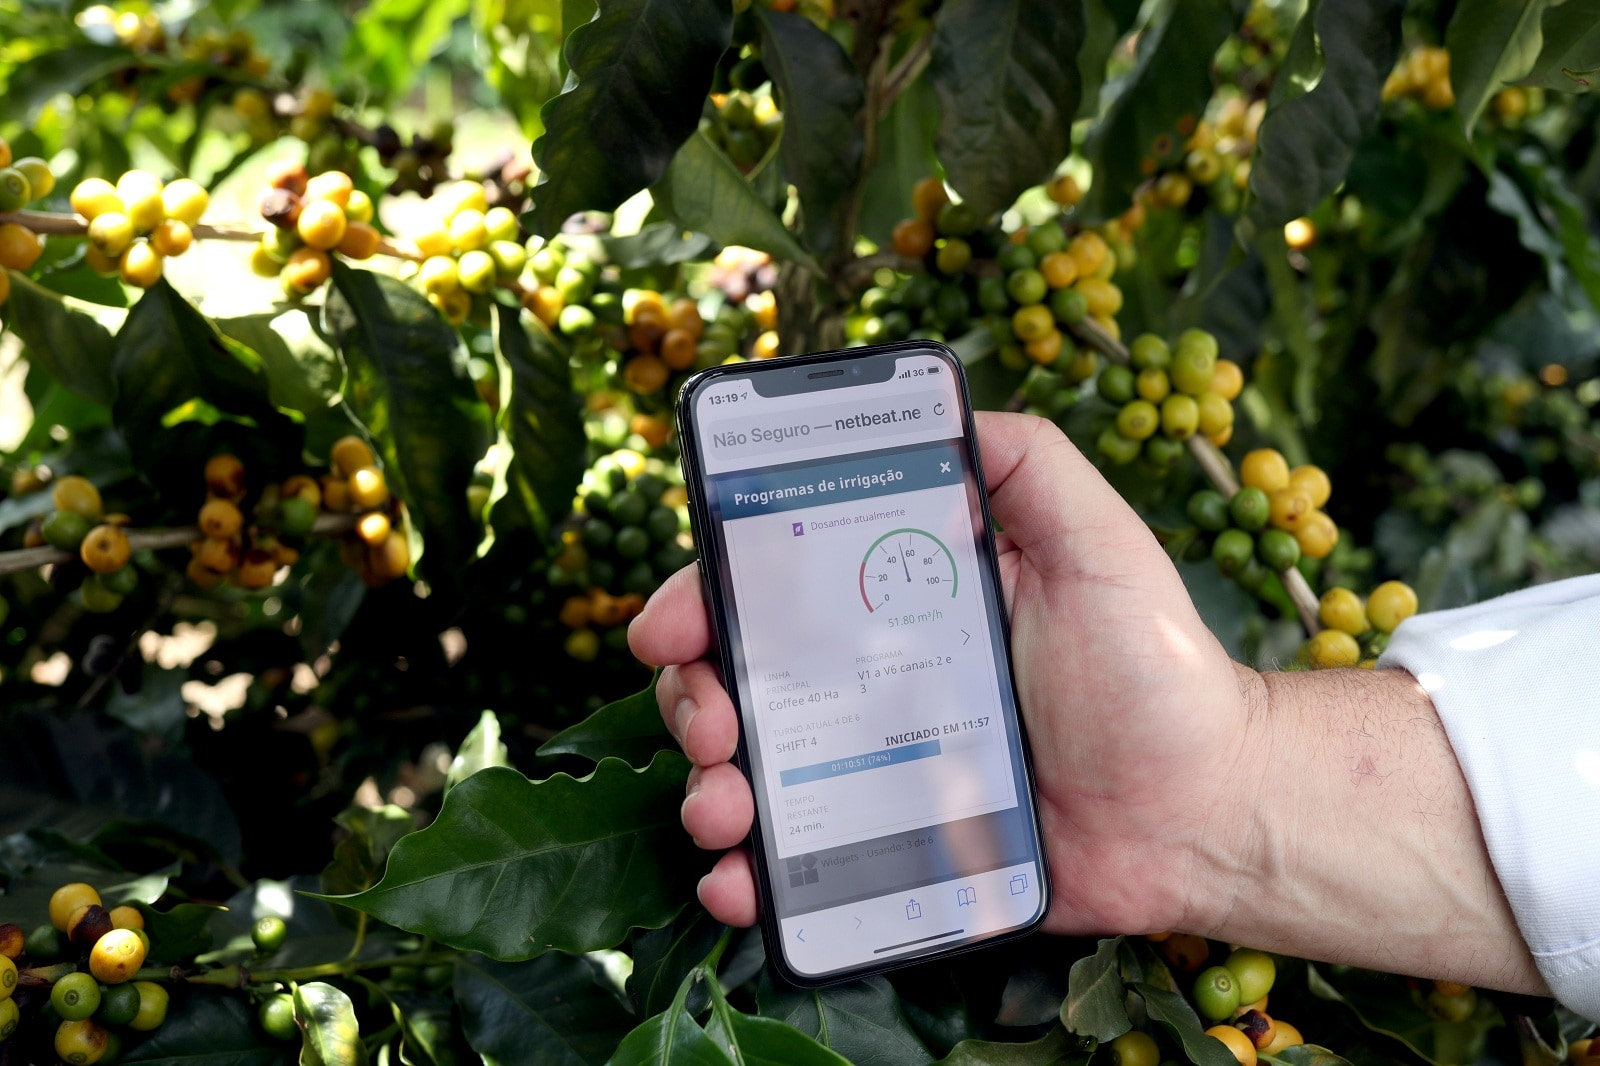 A farmer shows an irrigation management system app on his mobile phone at a coffee plantation in Sao Sebastiao do Paraiso, Brazil April 22, 2019. REUTERS/Amanda Perobelli/Files